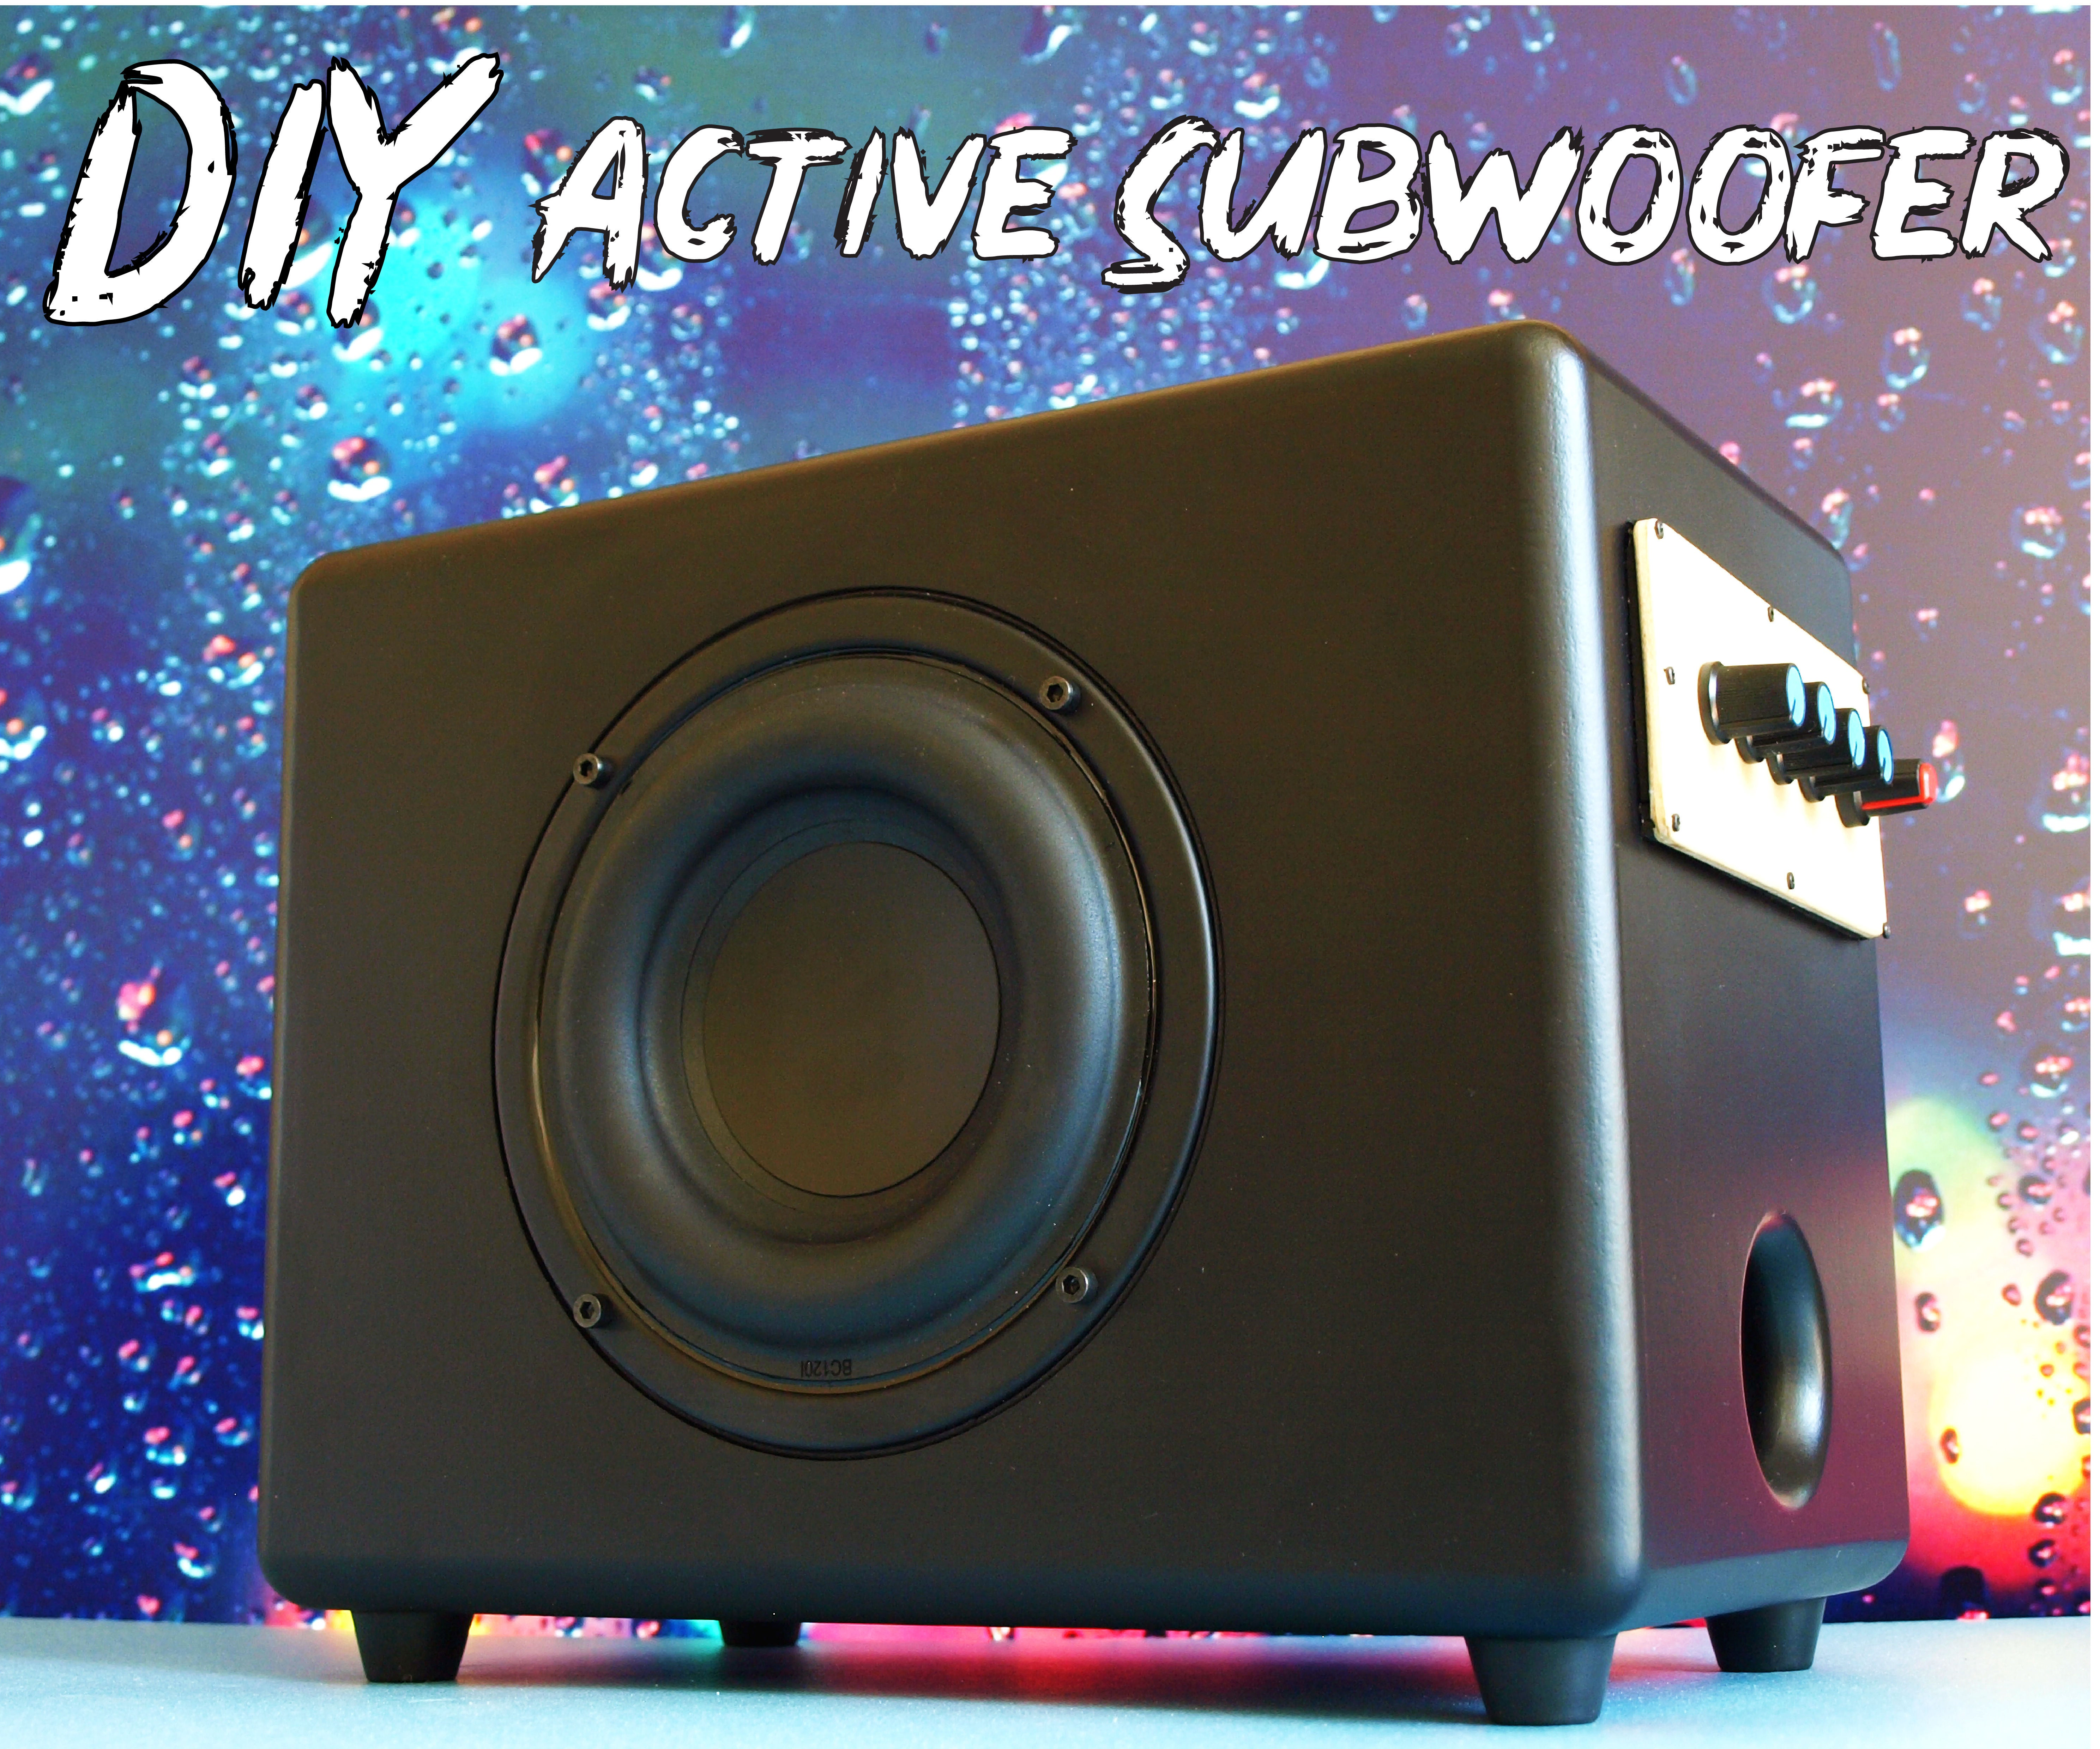 Small Subwoofer Home Theater Circuit Assembly Wiring Diagram from cdn.instructables.com